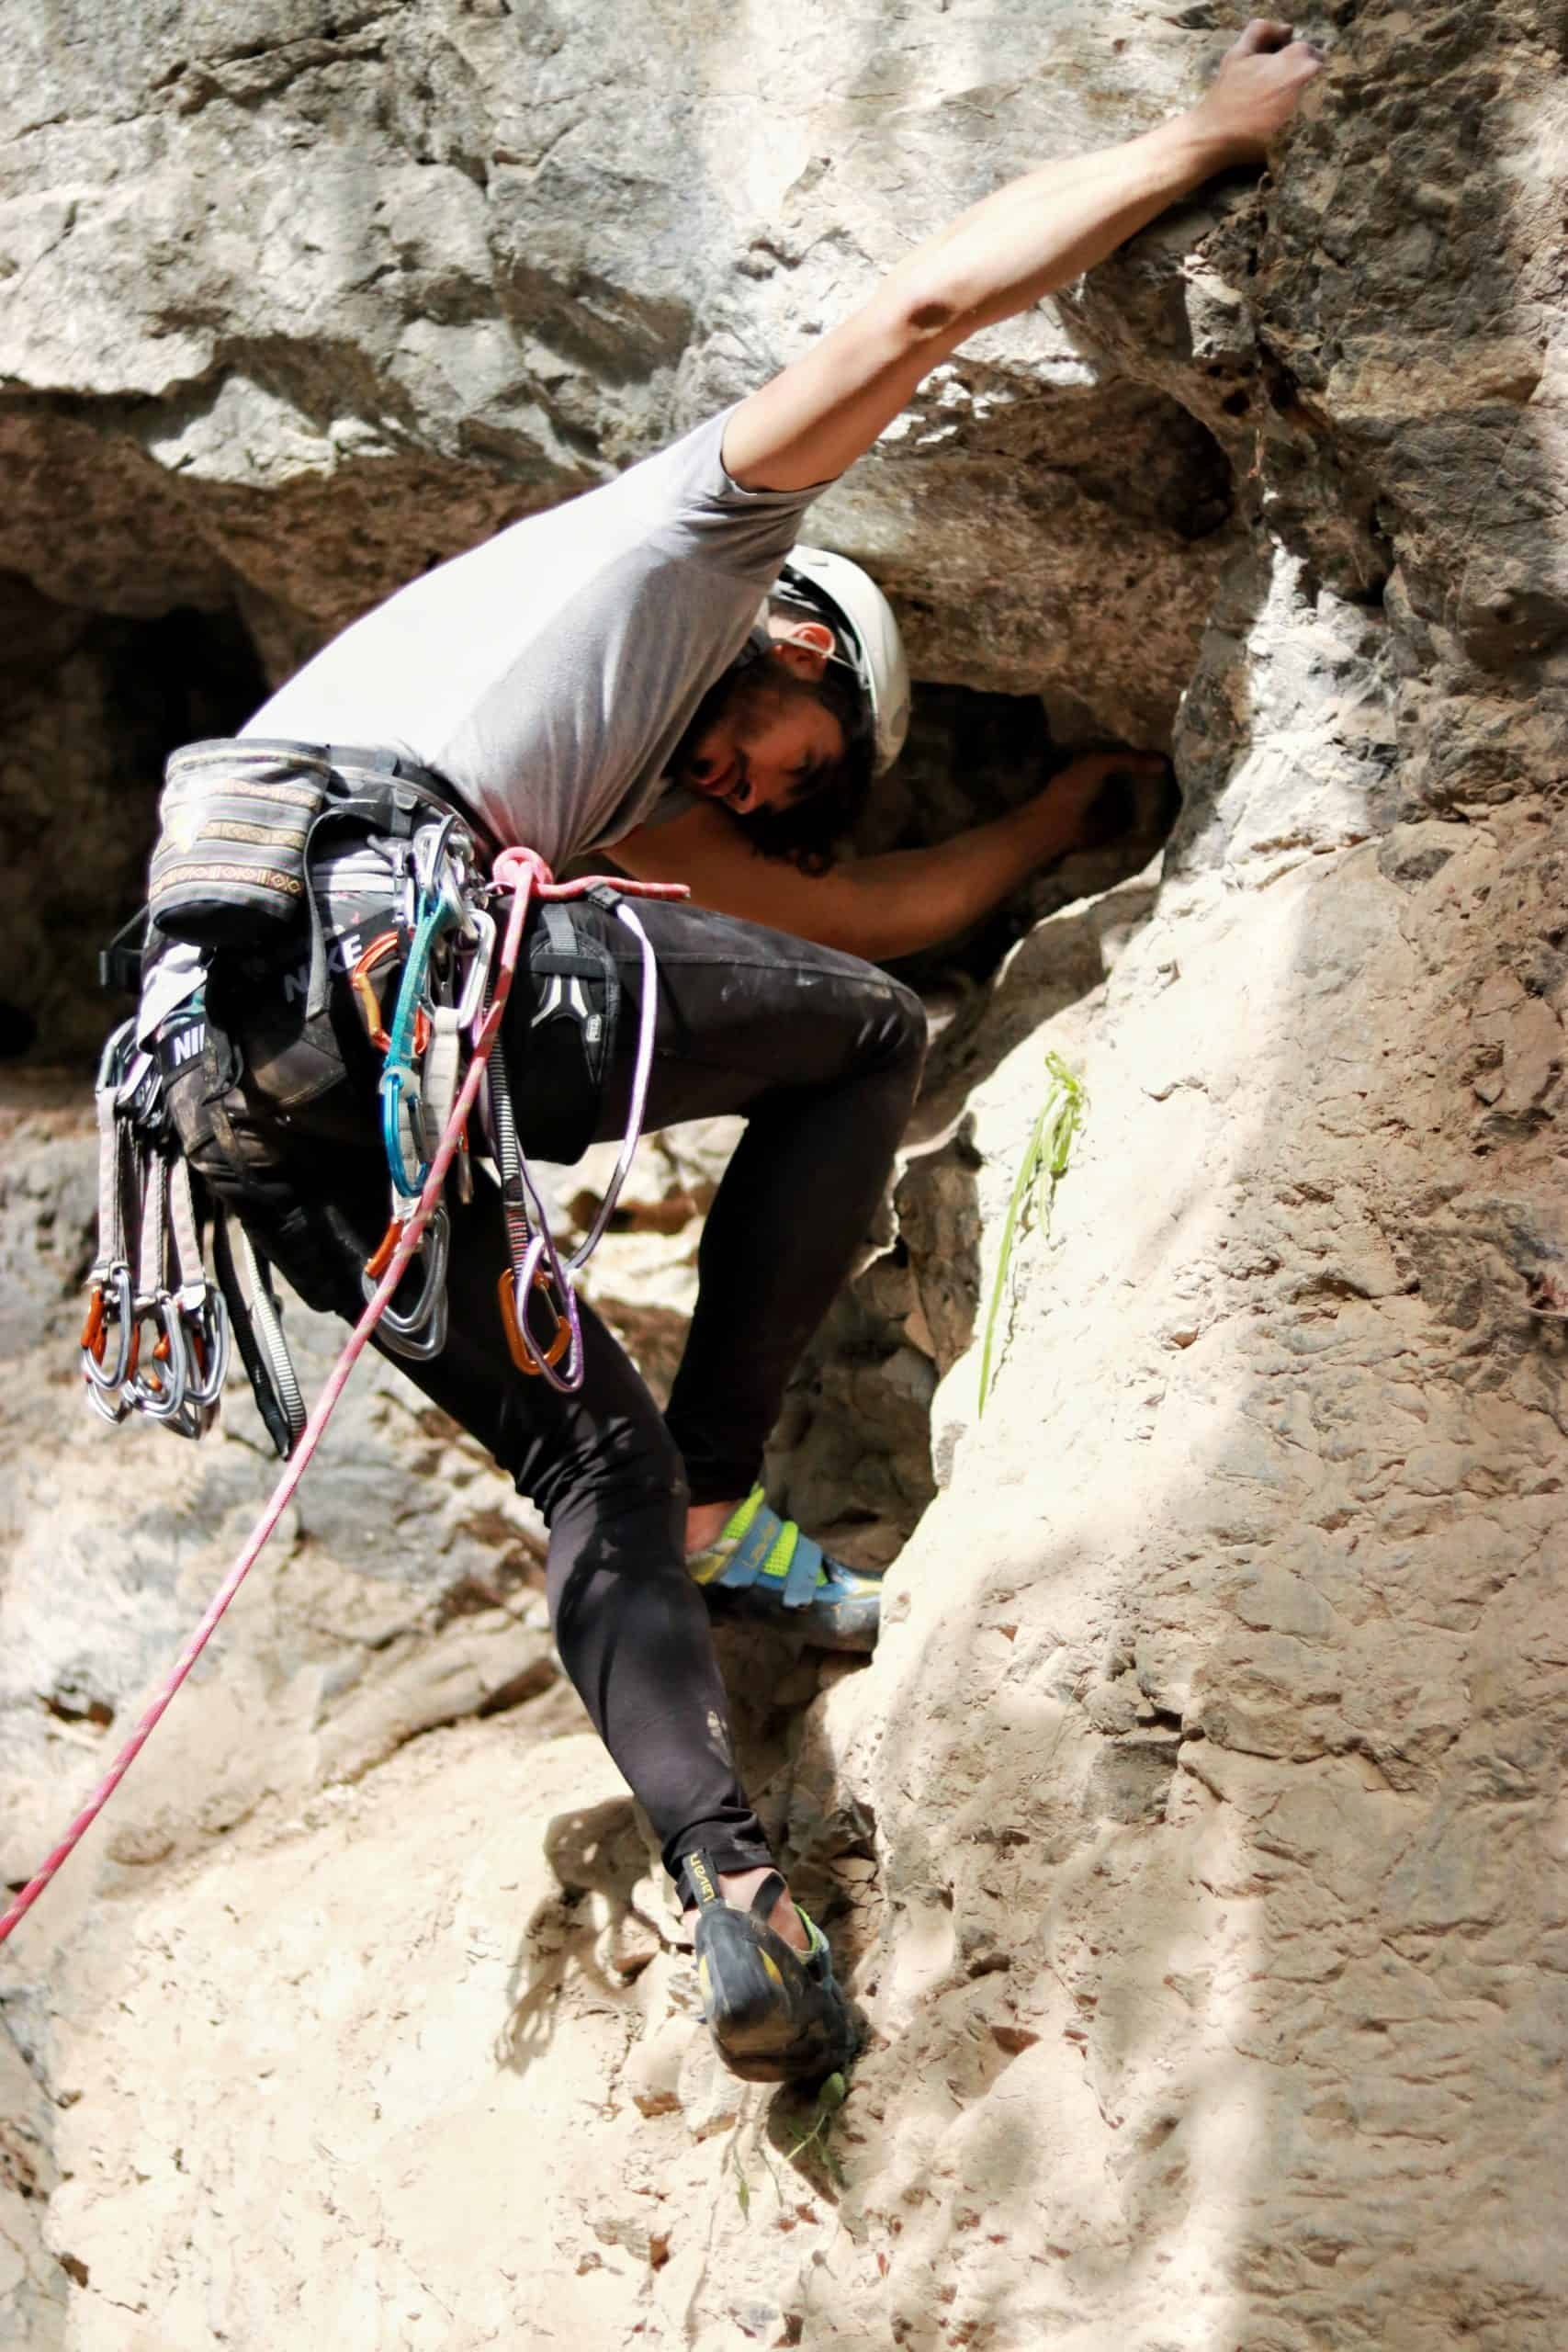 Experts Climbing: The Best Experts In Climbing